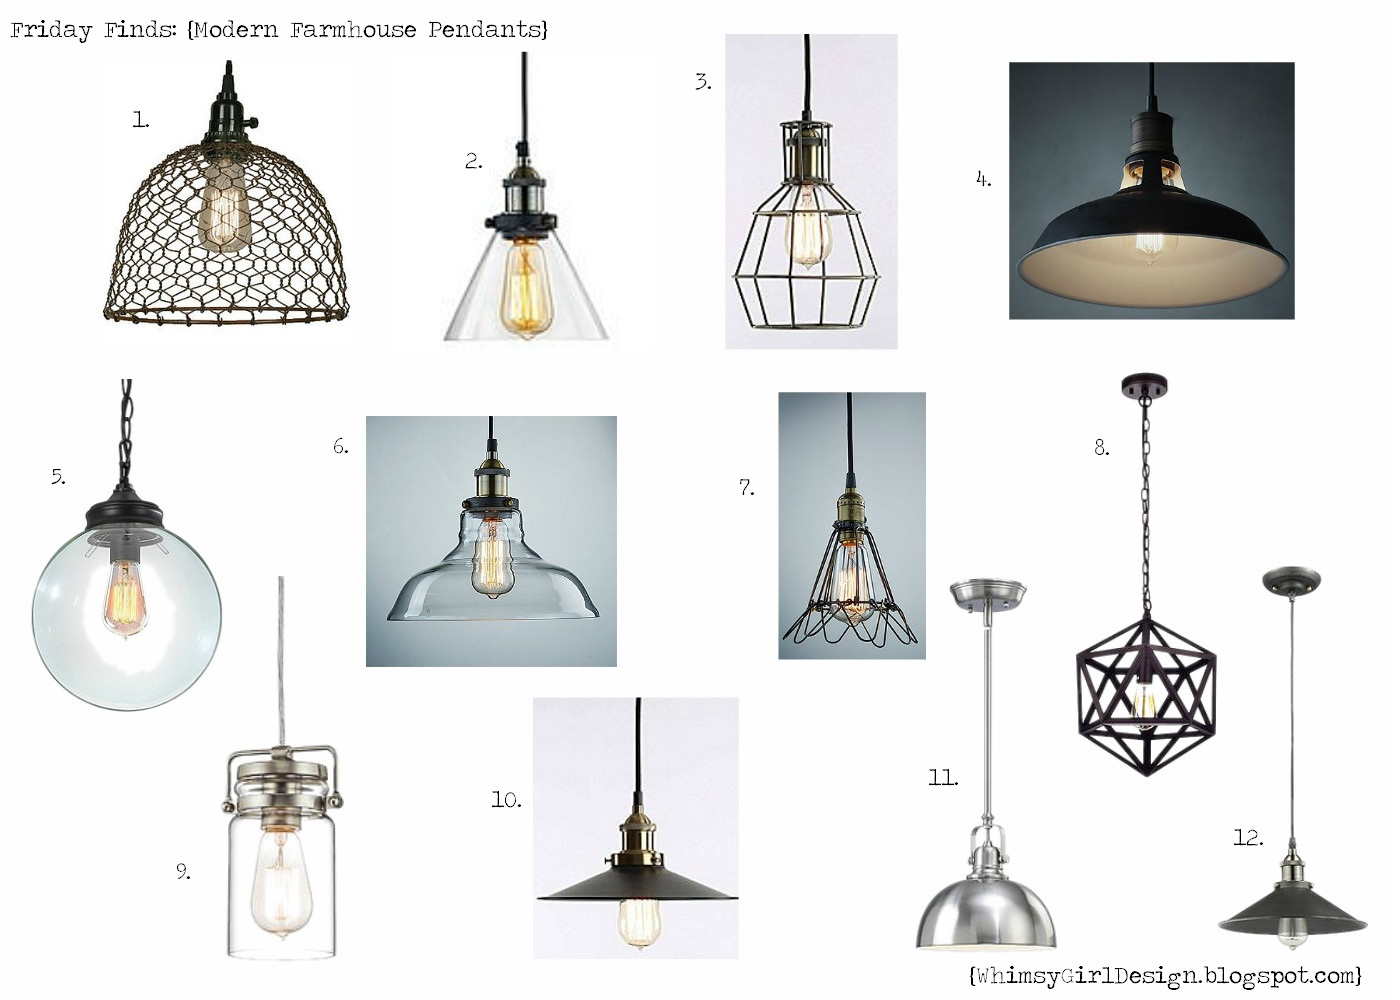 Whimsy Girl Friday Finds Modern Farmhouse Pendant Lights